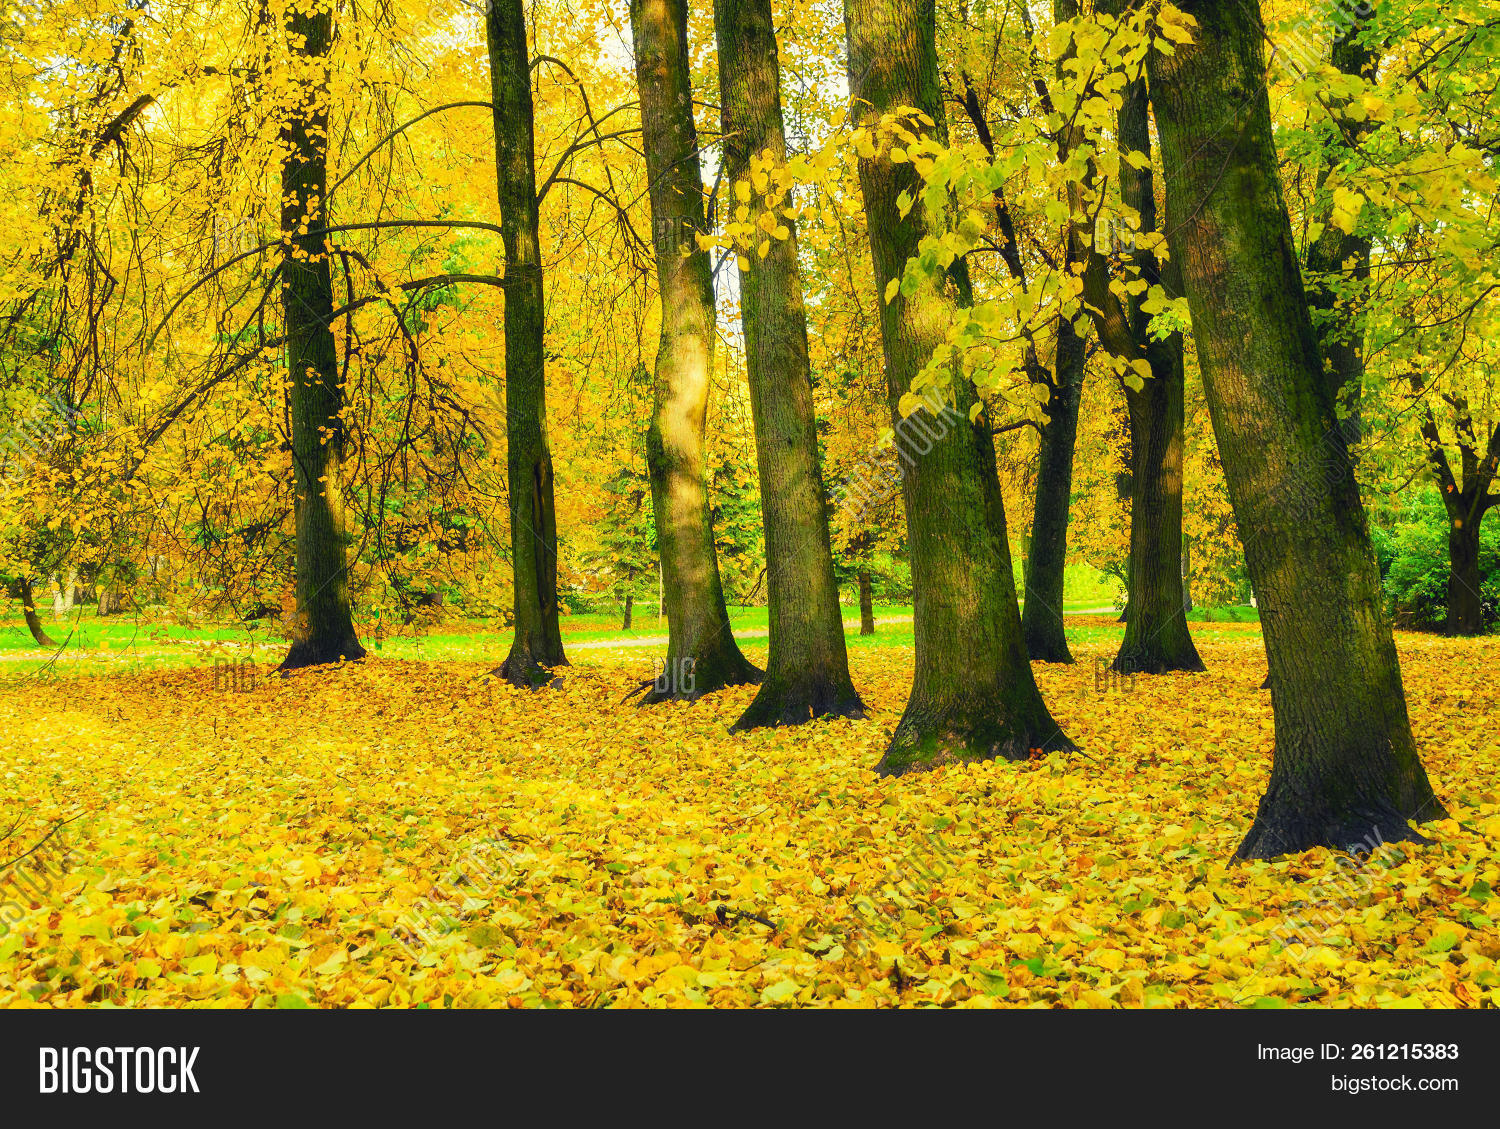 November,October,September,autumn,autumnal,background,bright,cloudy,deciduous,fall,foliage,forest,gold,golden,grass,grove,landscape,lawn,leaves,light,maple,nature,nobody,oak,old,orange,park,picturesque,red,rural,scene,scenery,sun,sunny,tree,view,weather,yellow,fall-forest,fall-landscape,fall-nature,fall-scene,fall-trees,fall-background,fall-leaves,fall-park,fall-outdoors,fall-leaf,fall-alley,fall-sunset